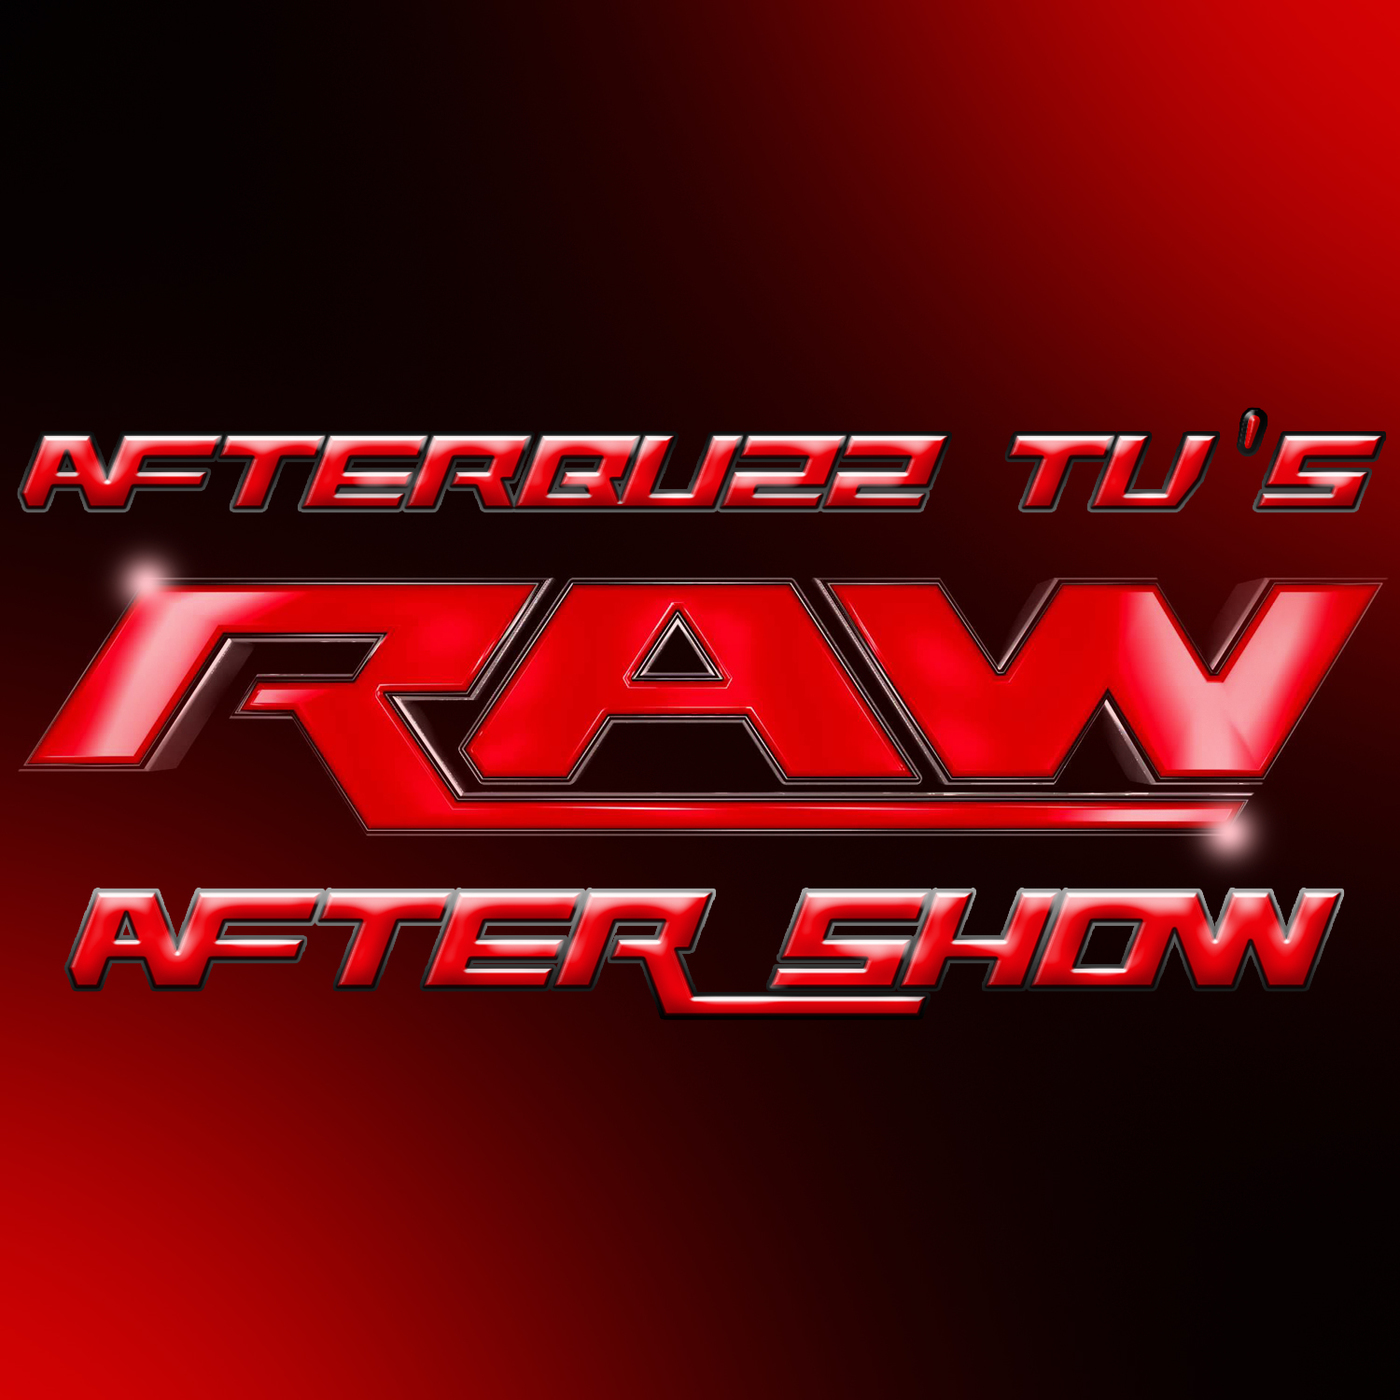 Wwe monday night raw afterbuzz tv aftershow listen via - Monday night raw images ...